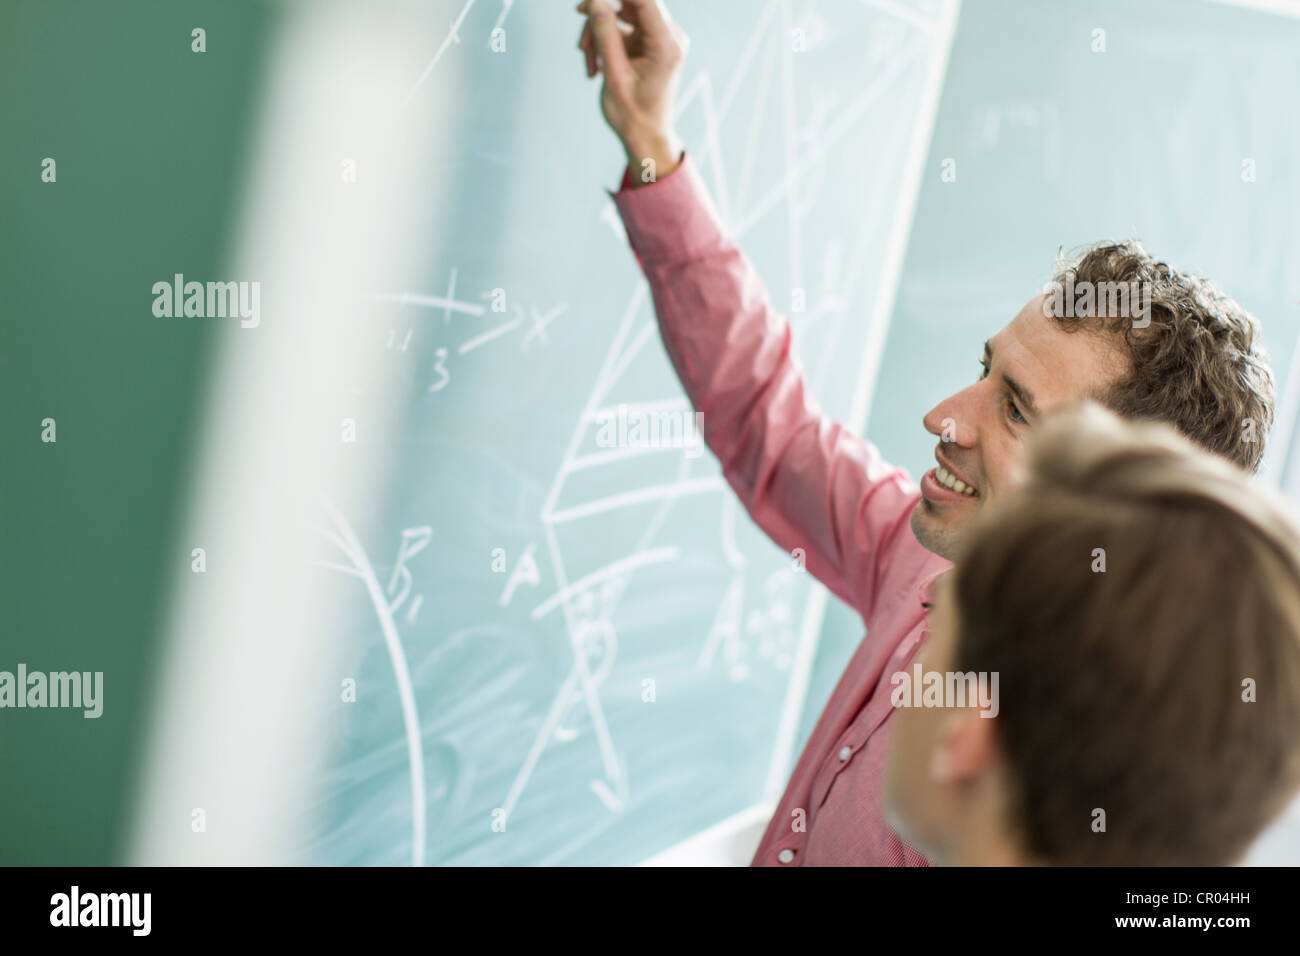 Teacher and student working at board - Stock Image